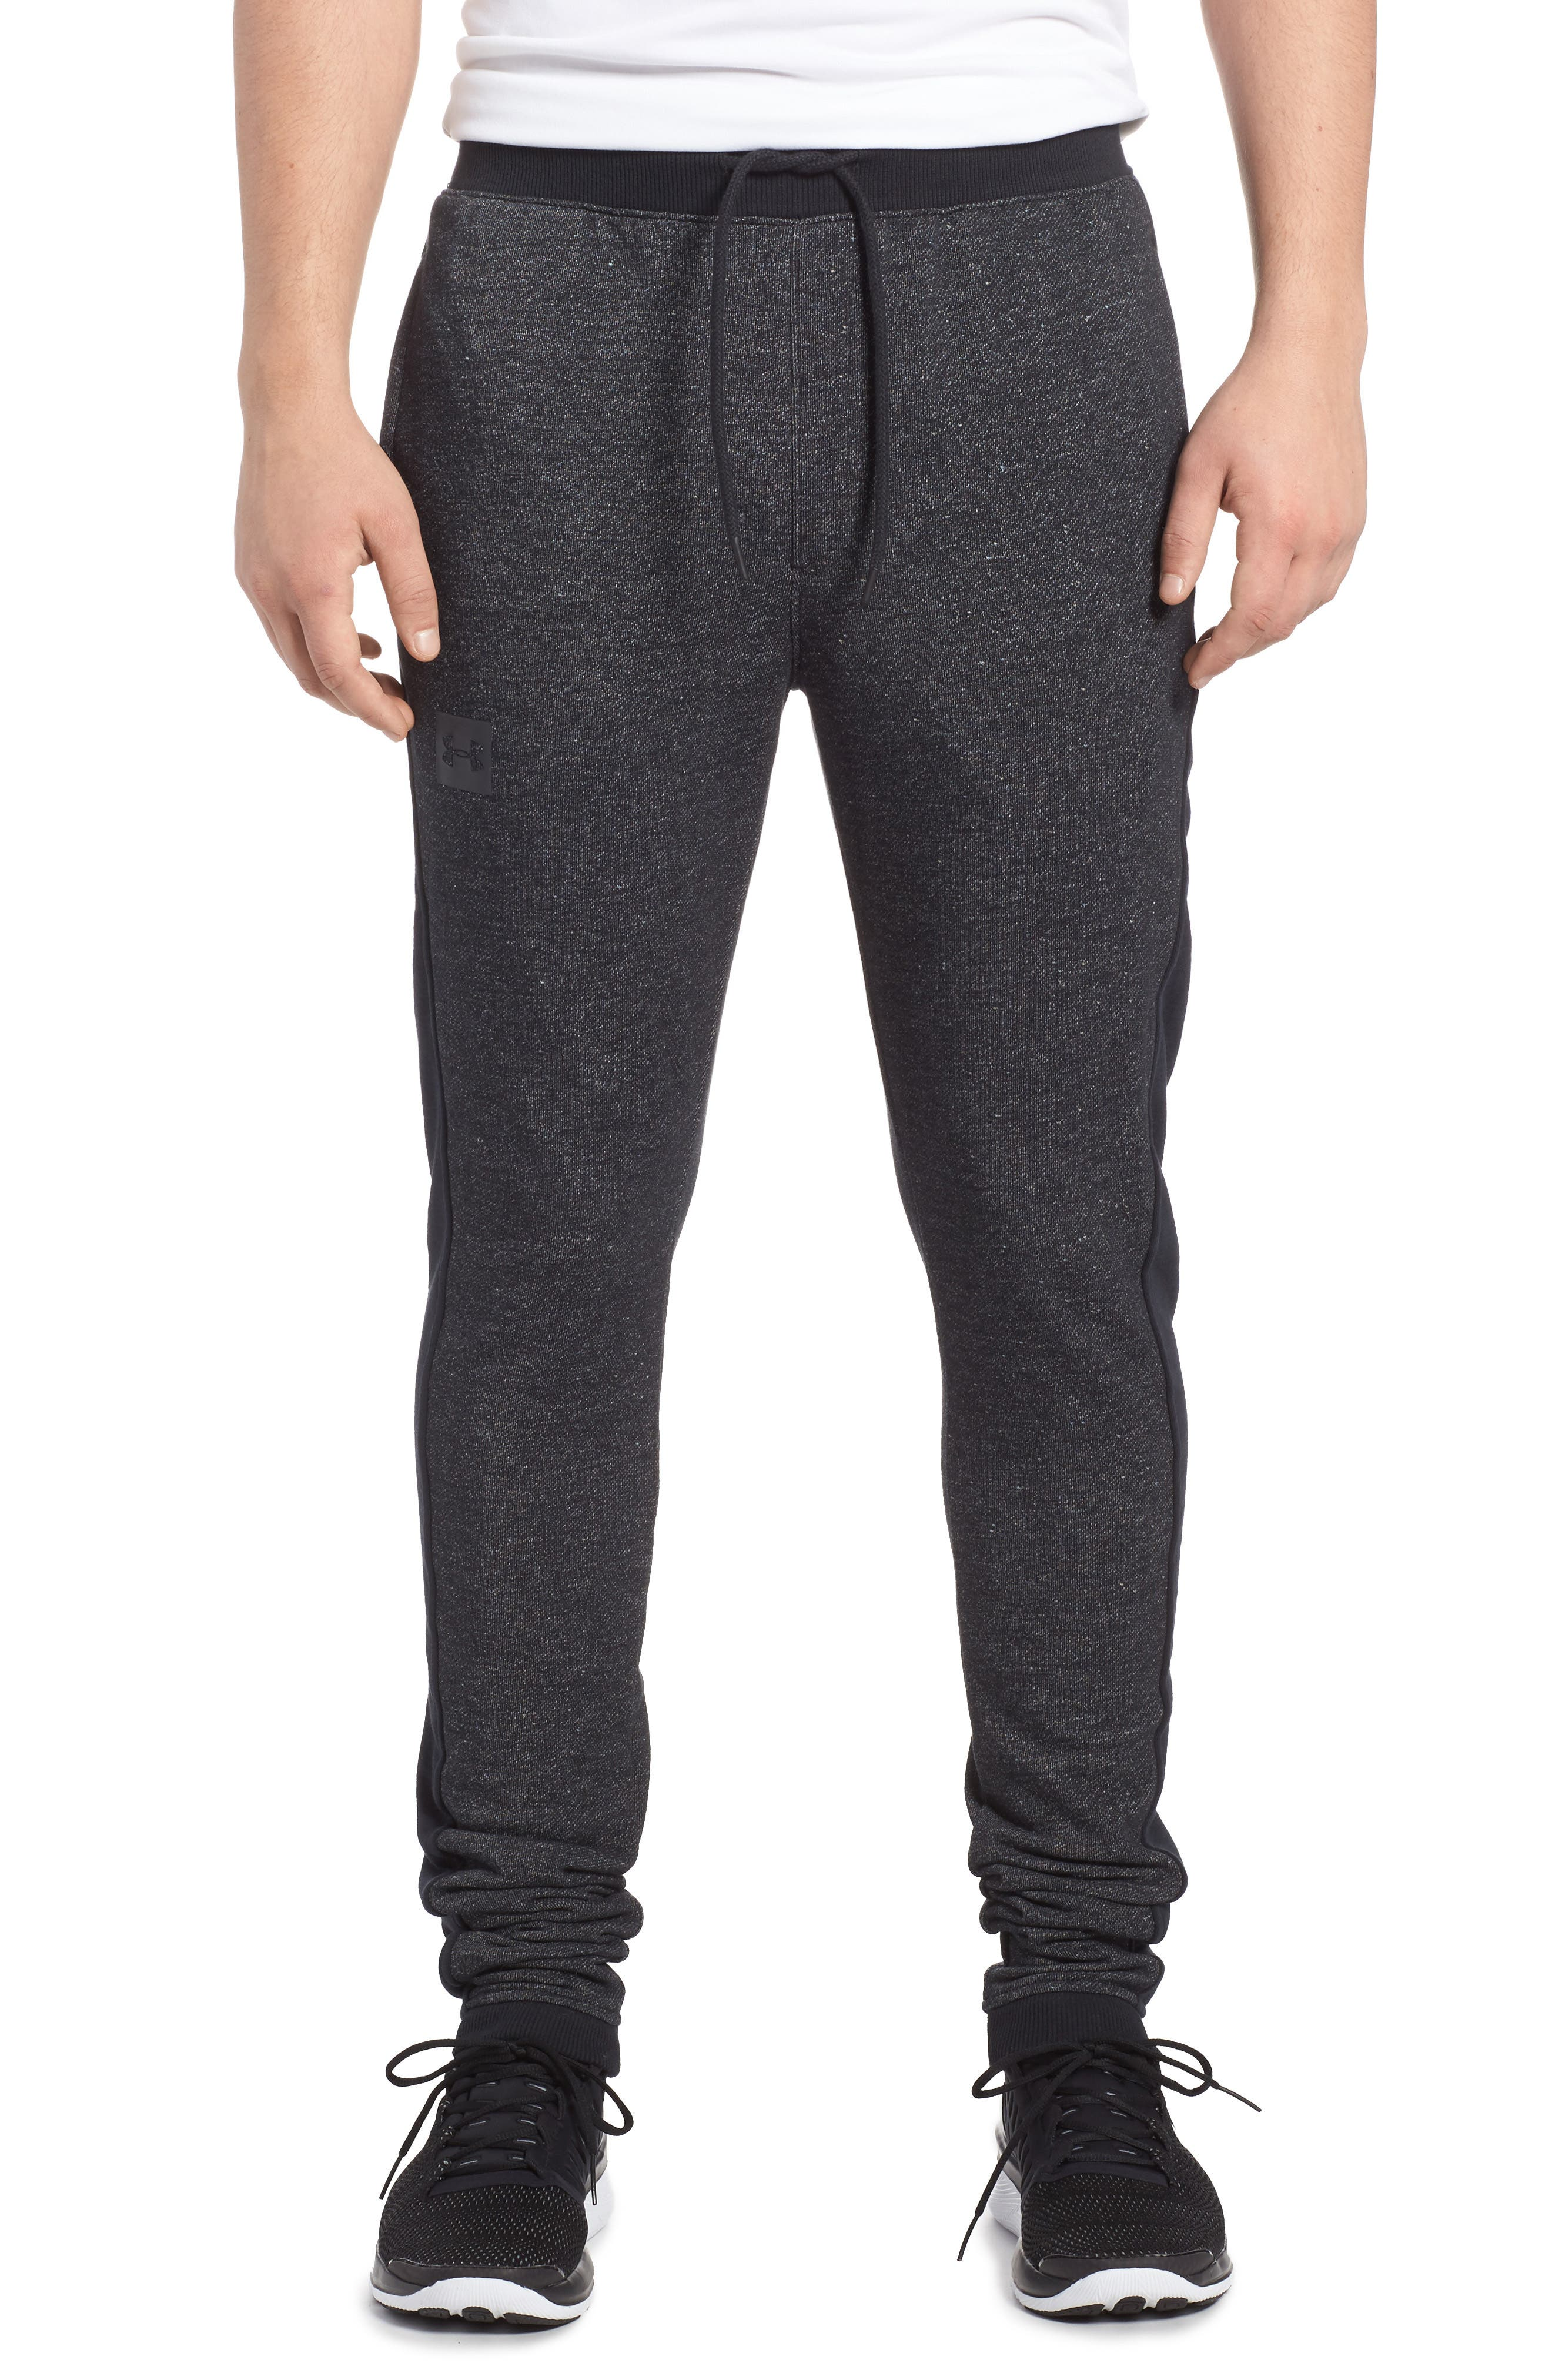 Main Image - Under Armour Sportstyle Fitted Fleece Leggings